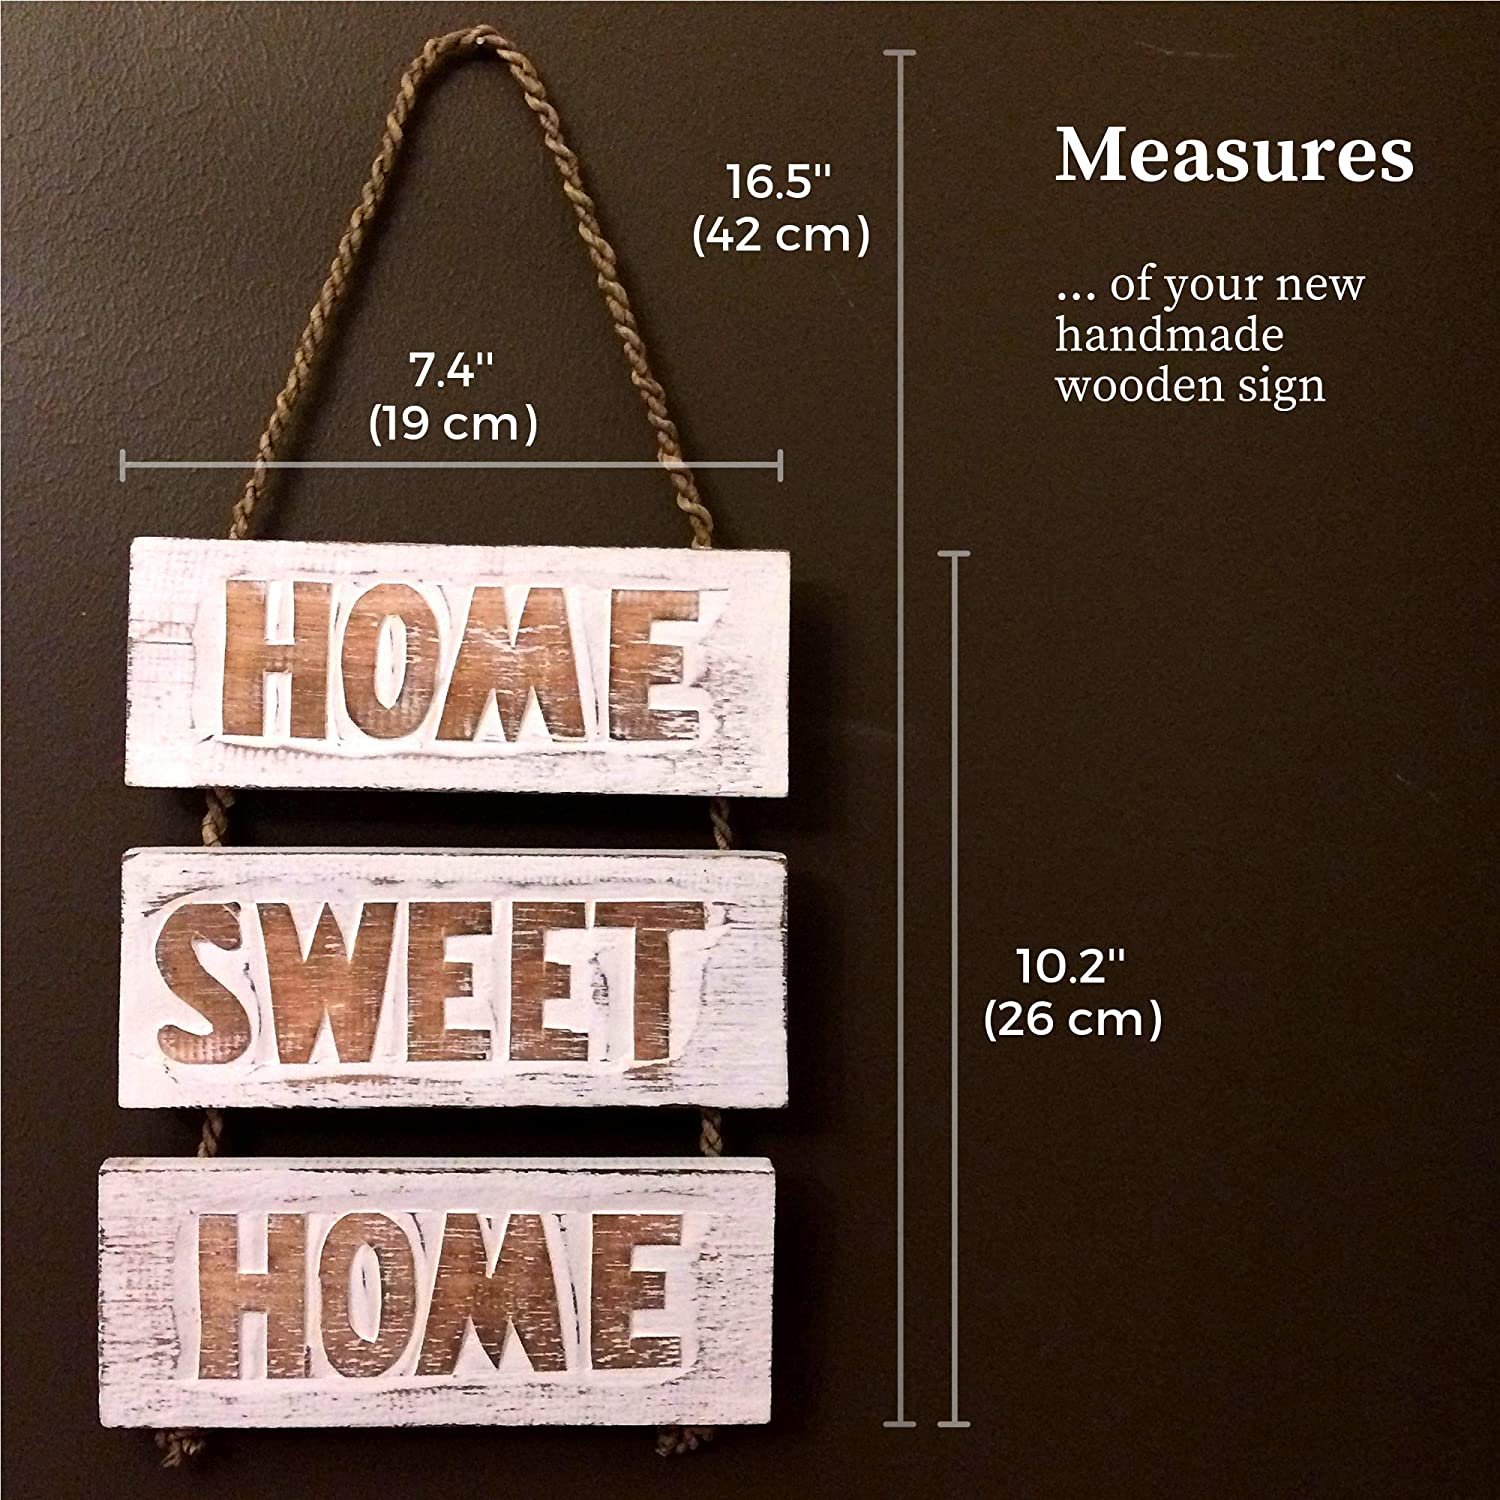 Amazon.com: Home Sweet Home cartel de madera – hecho a mano ...